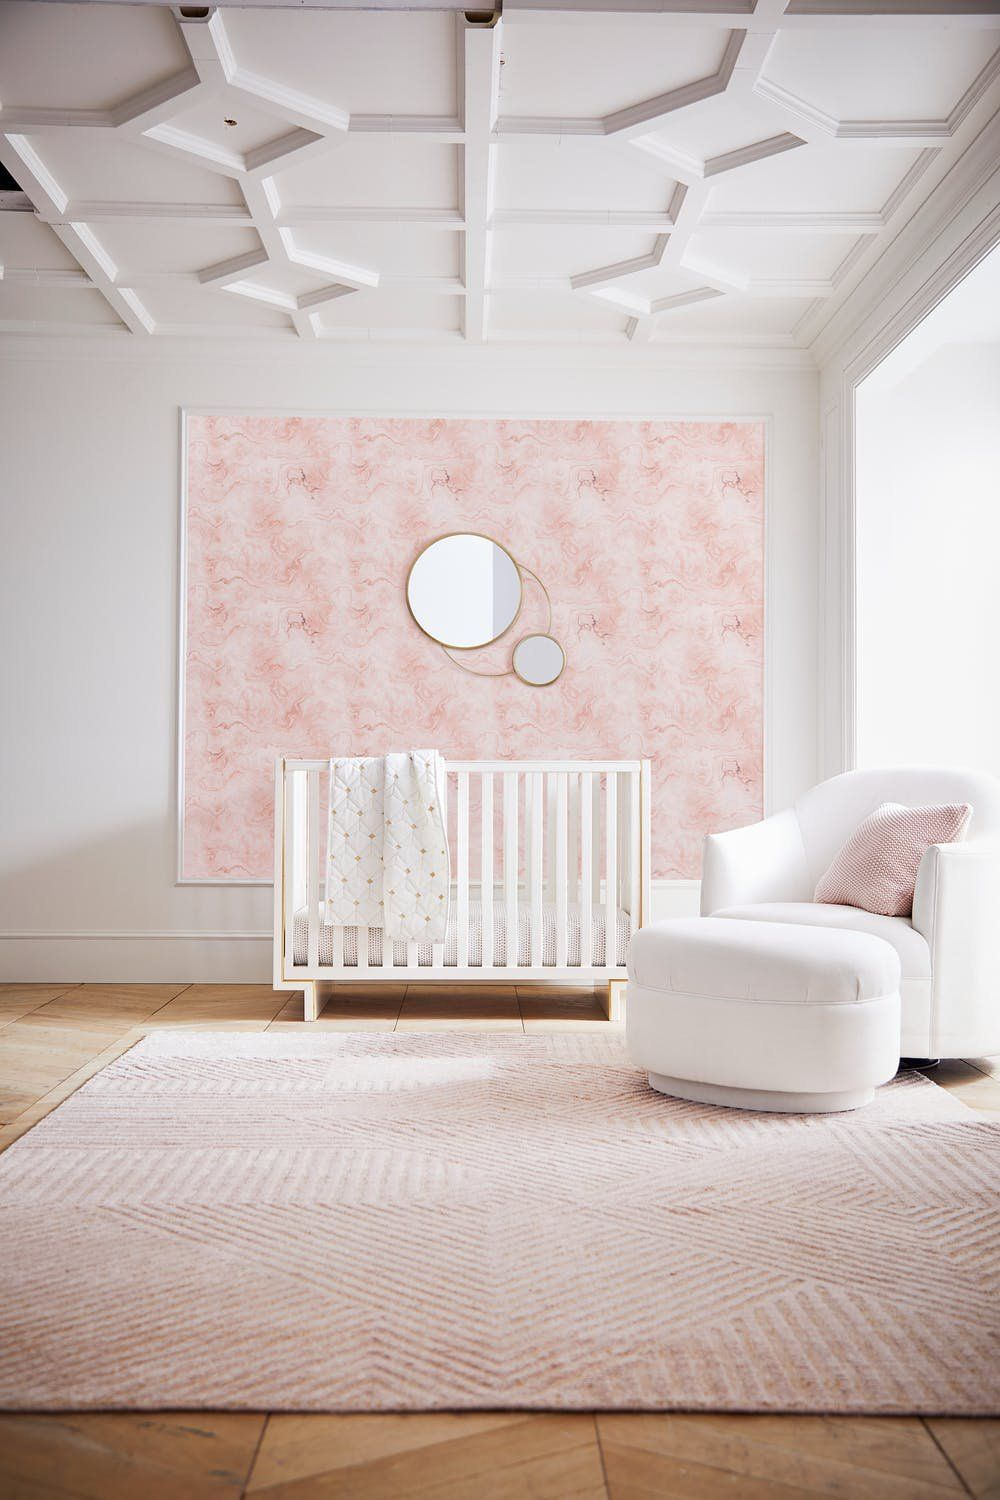 This Nursery Wallpaper Collab Is So Stylish We Want It In Our Room Pottery Barn Baby Kids Room Wallpaper Pottery Barn Kids Rooms